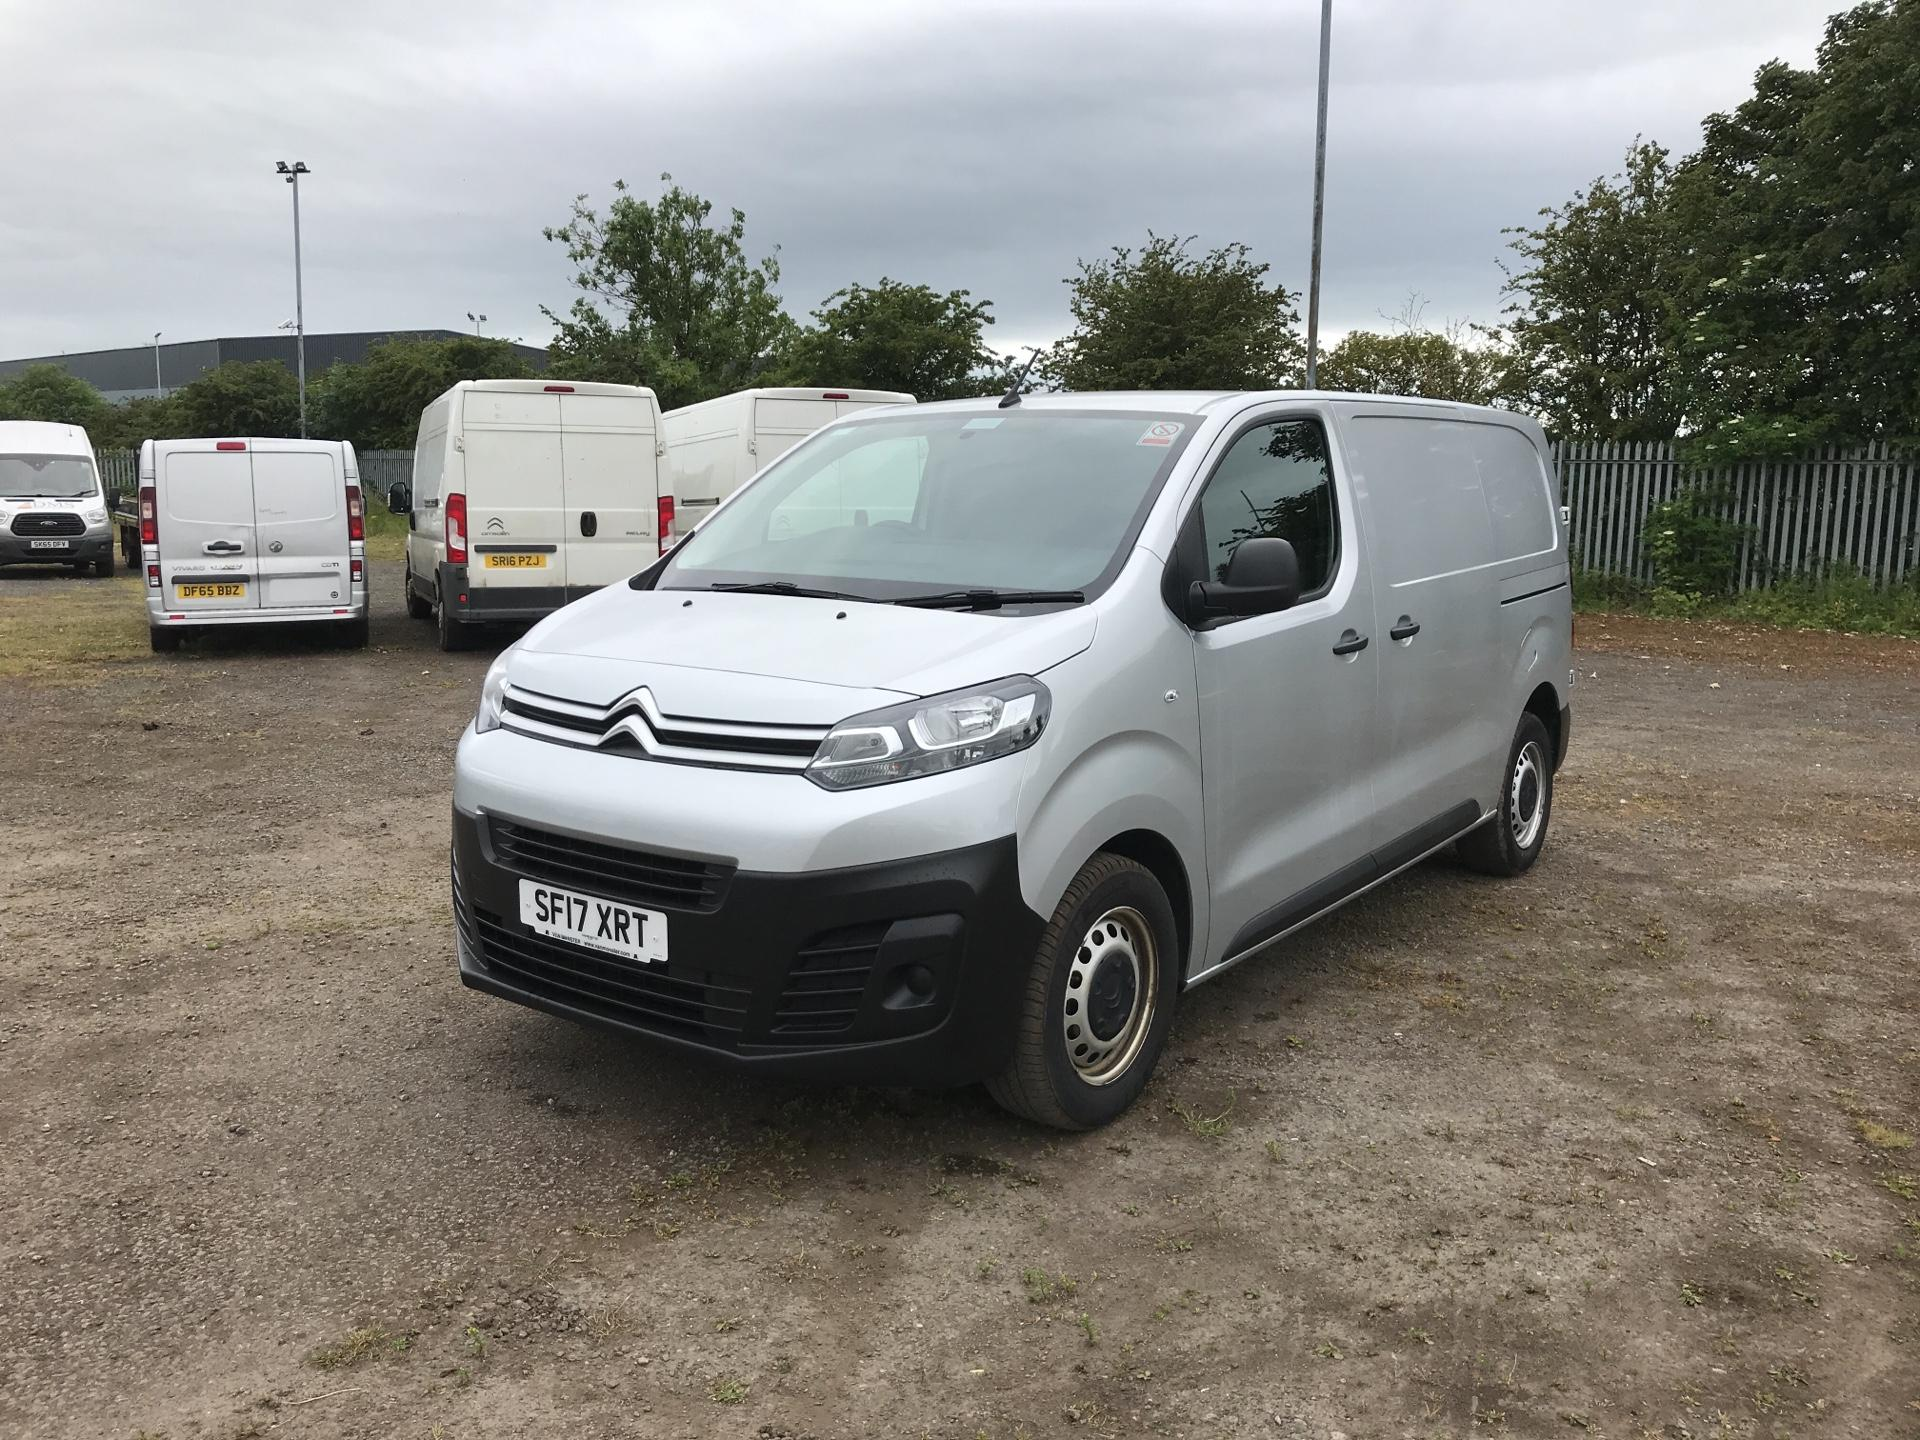 2017 Citroen Dispatch 1400 2.0 BLUE HDI ENTERPRISE 120 VAN (SF17XRT) Image 7